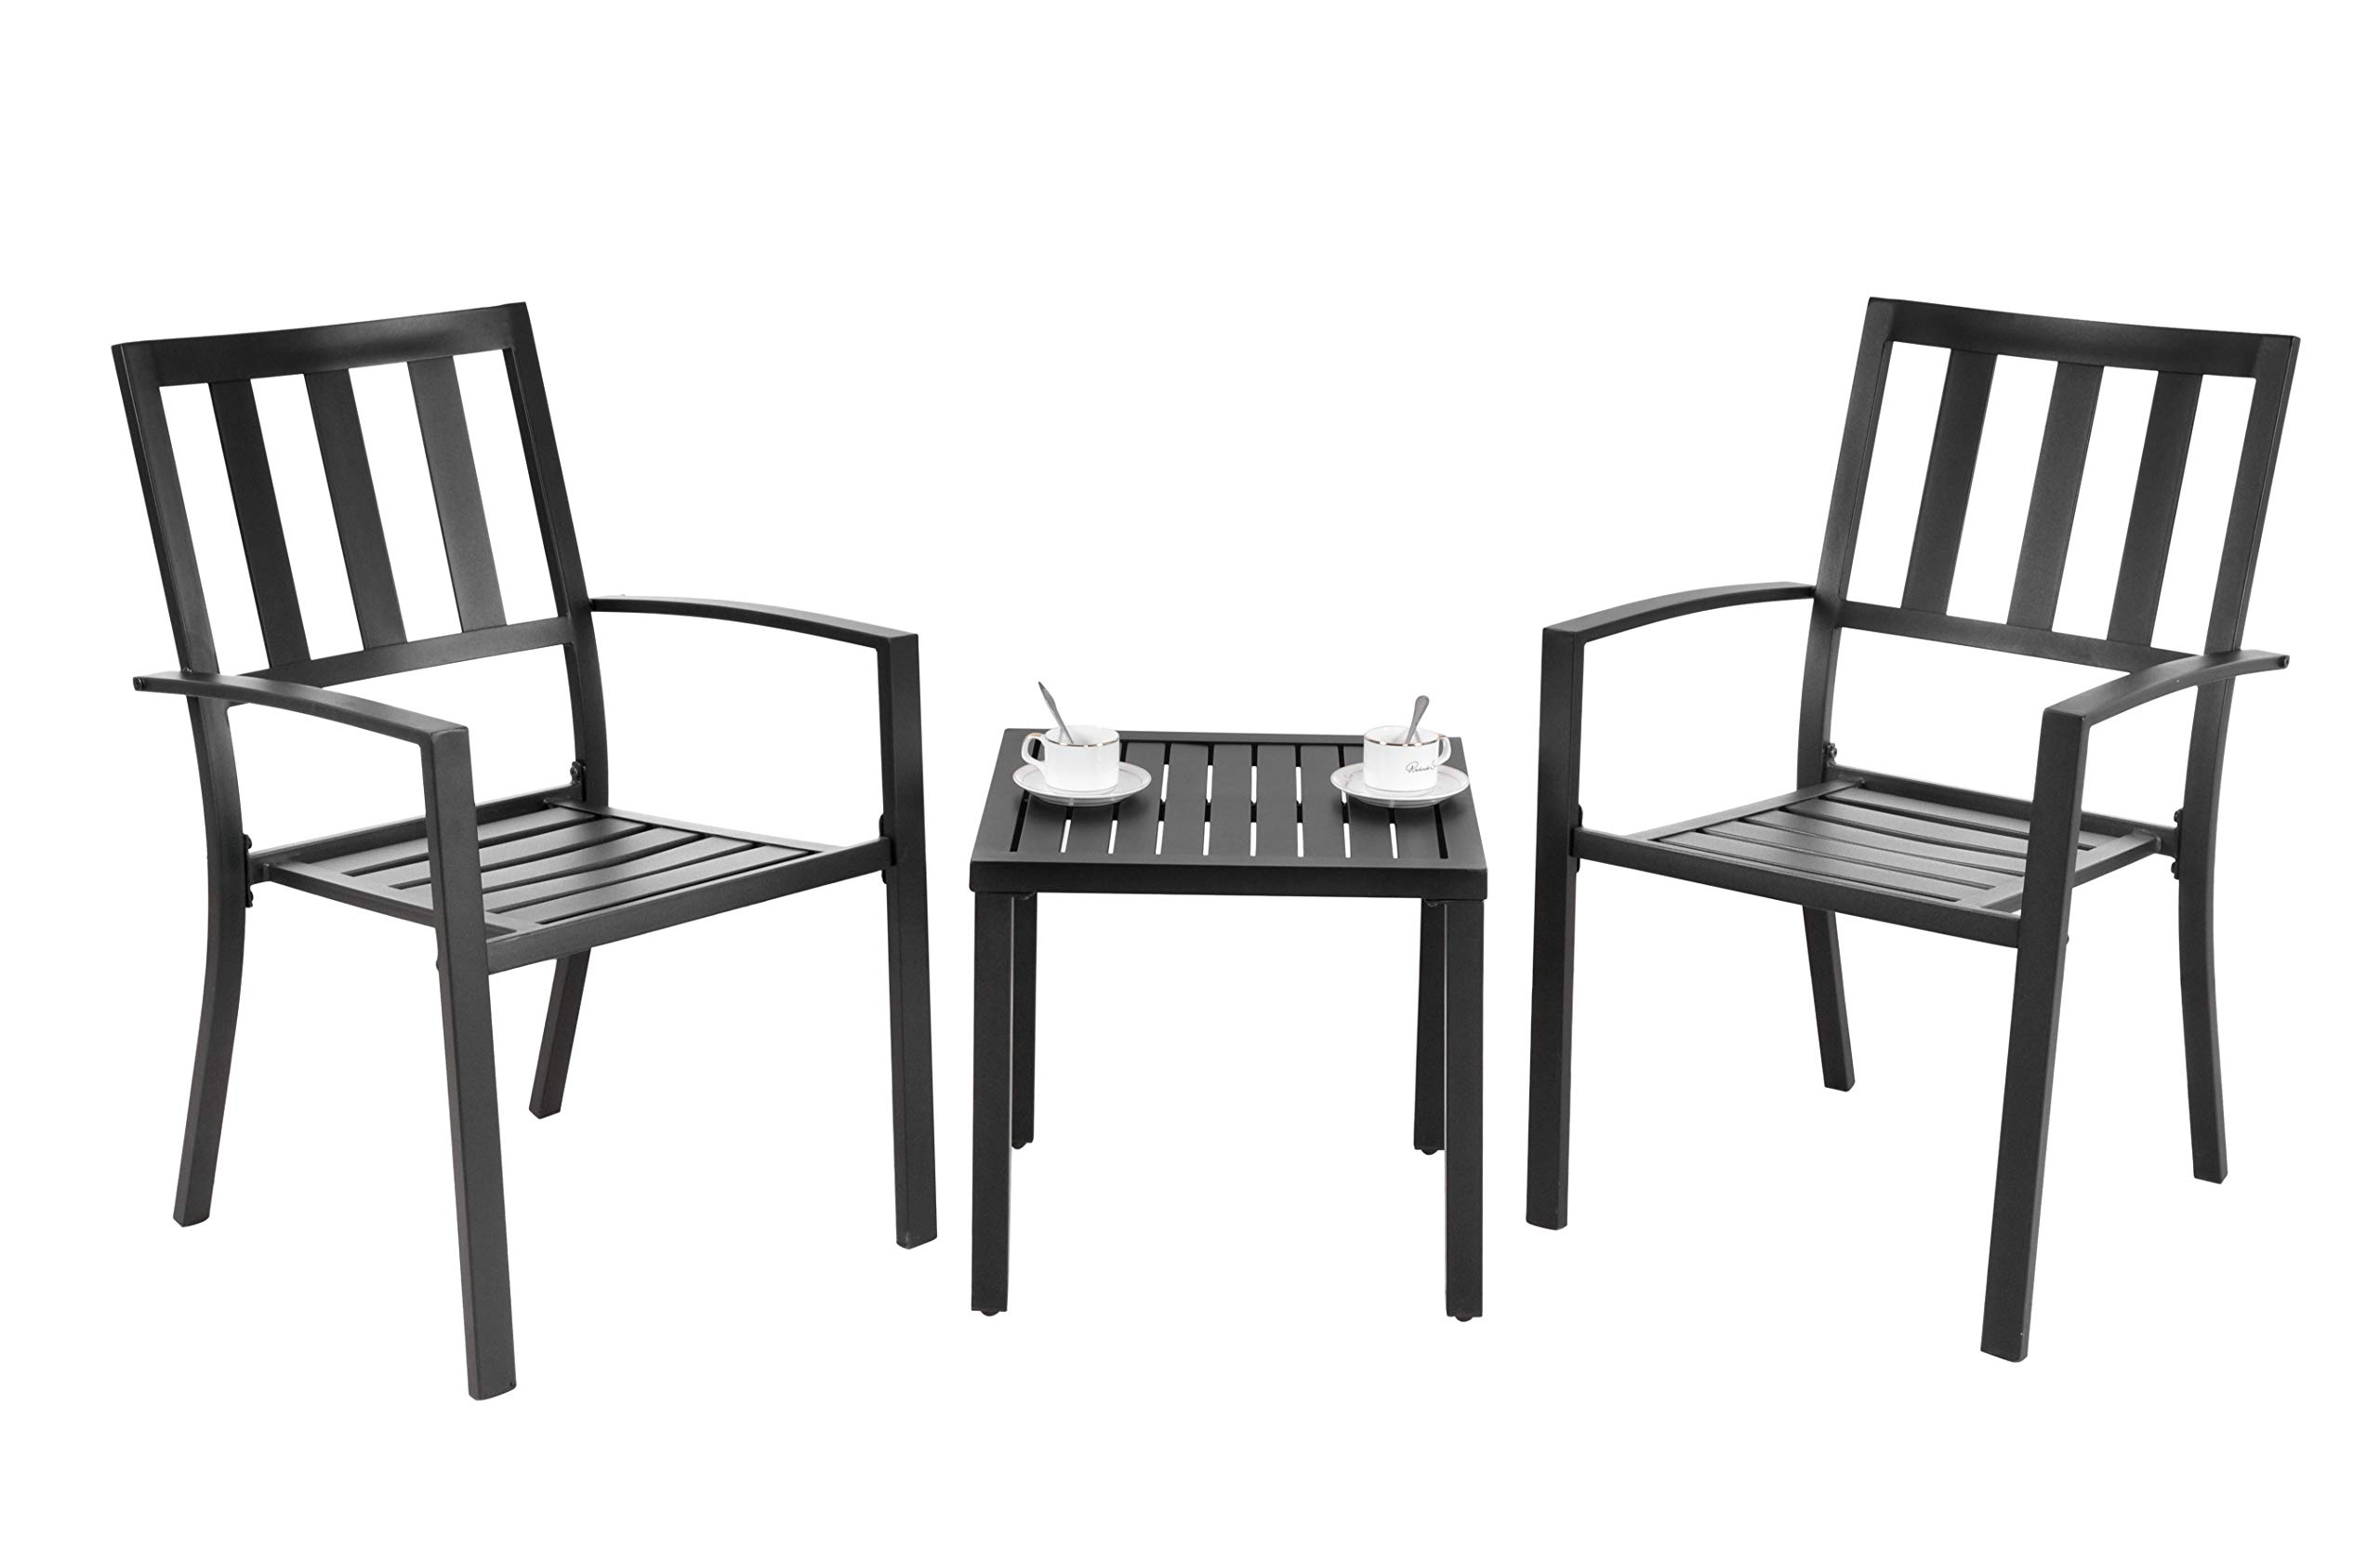 EMERIT Outdoor Metal Square Patio Bistro Side End Table,Black by EMERIT (Image #4)